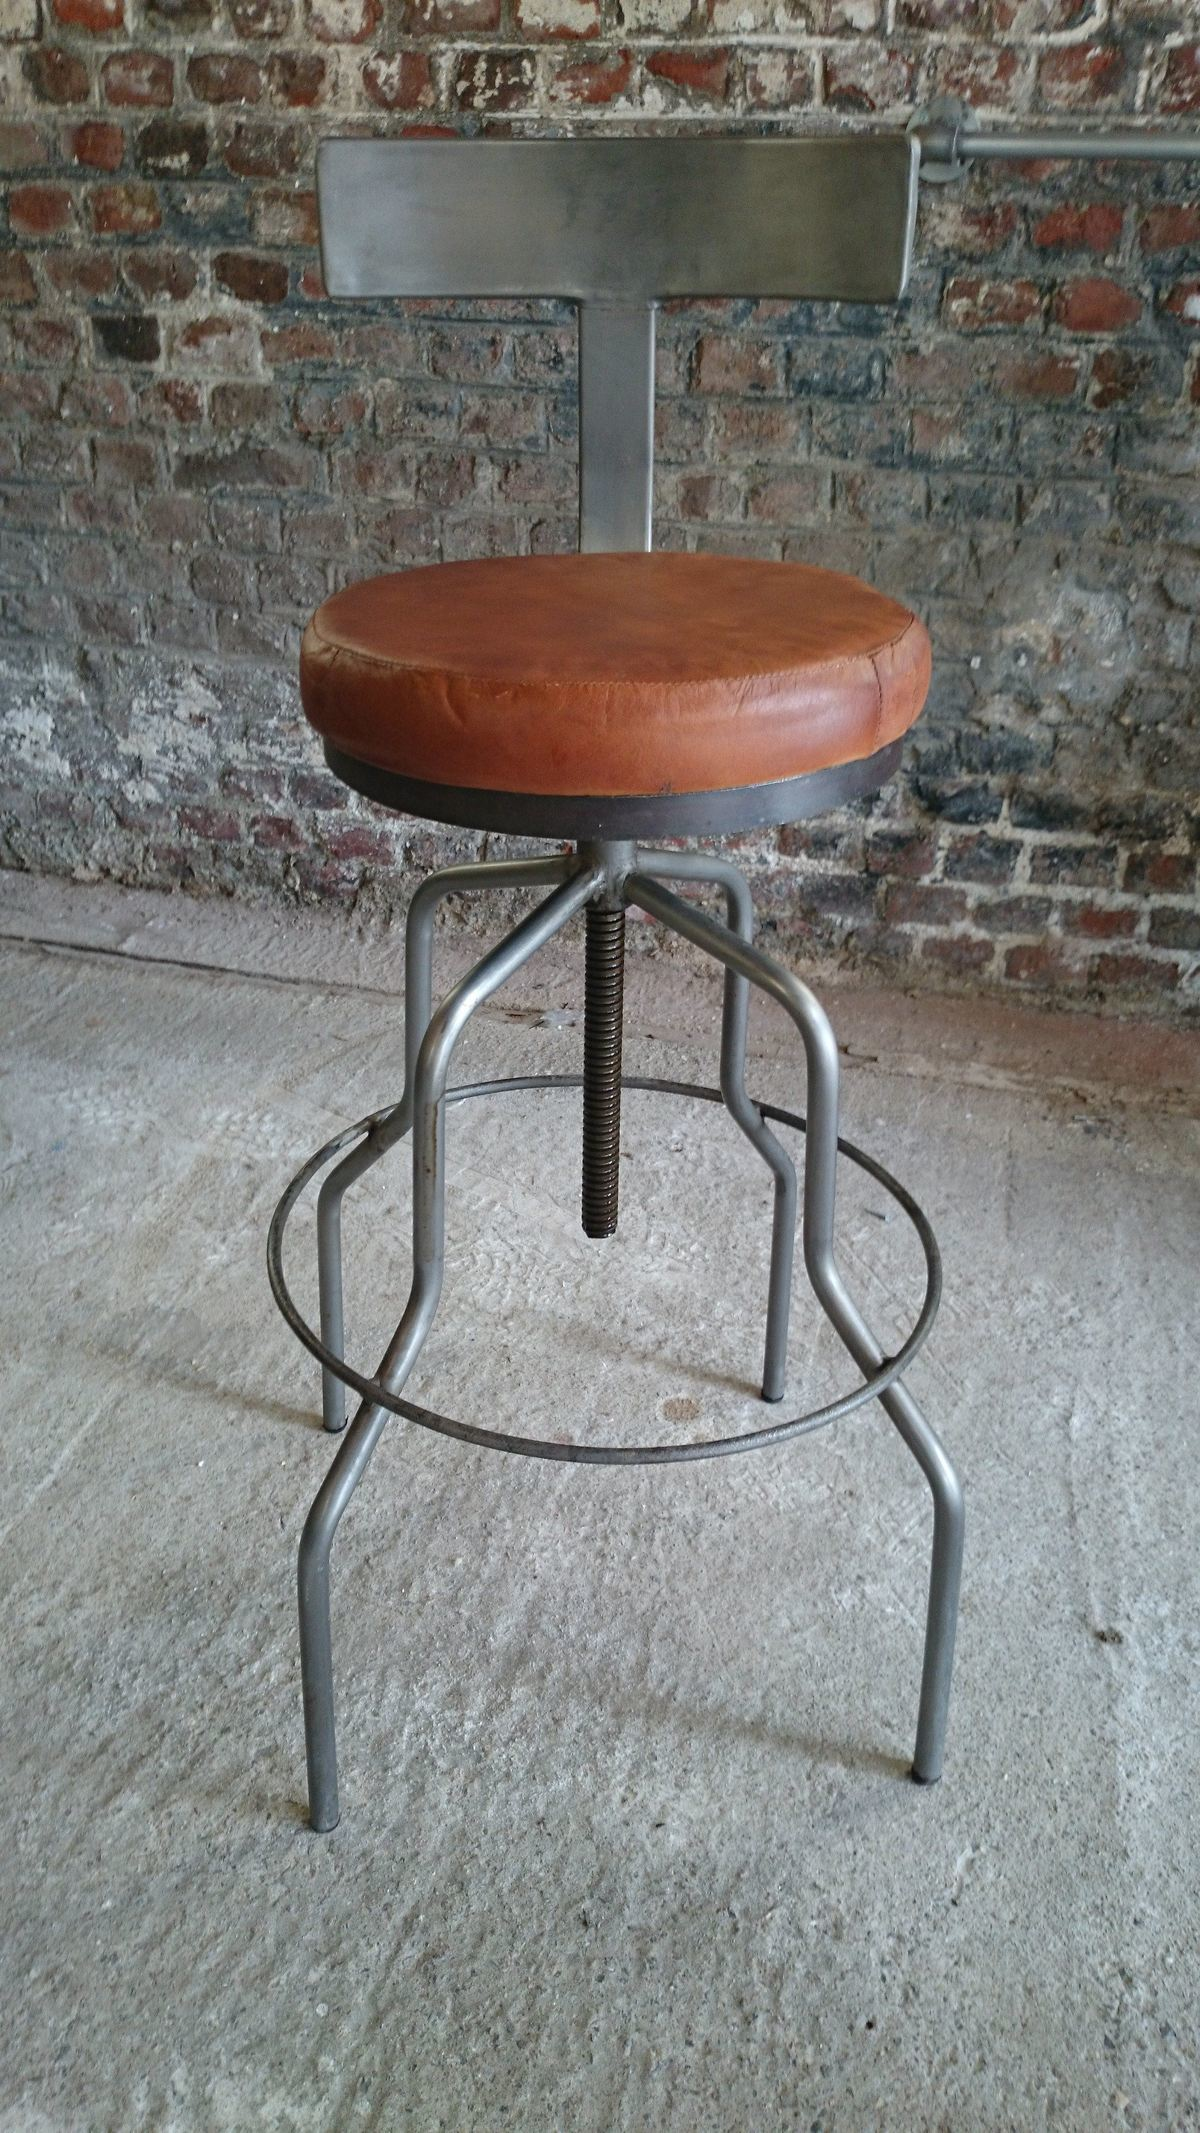 Industrial bar stool with backrest